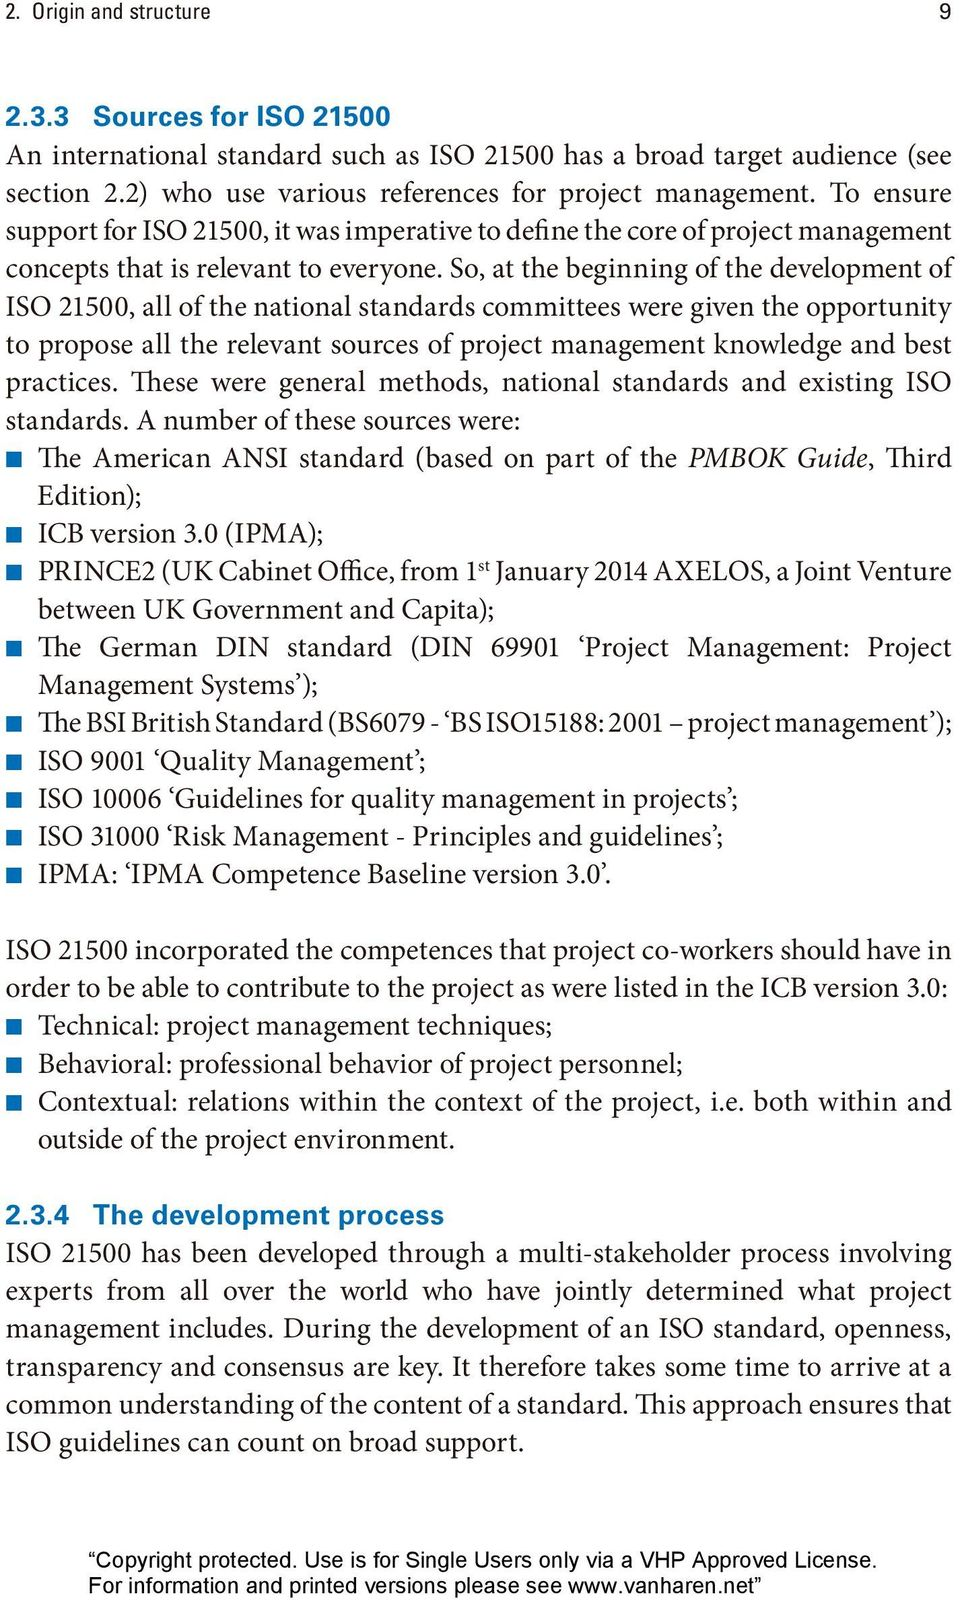 So, at the beginning of the development of ISO 21500, all of the national standards committees were given the opportunity to propose all the relevant sources of project management knowledge and best